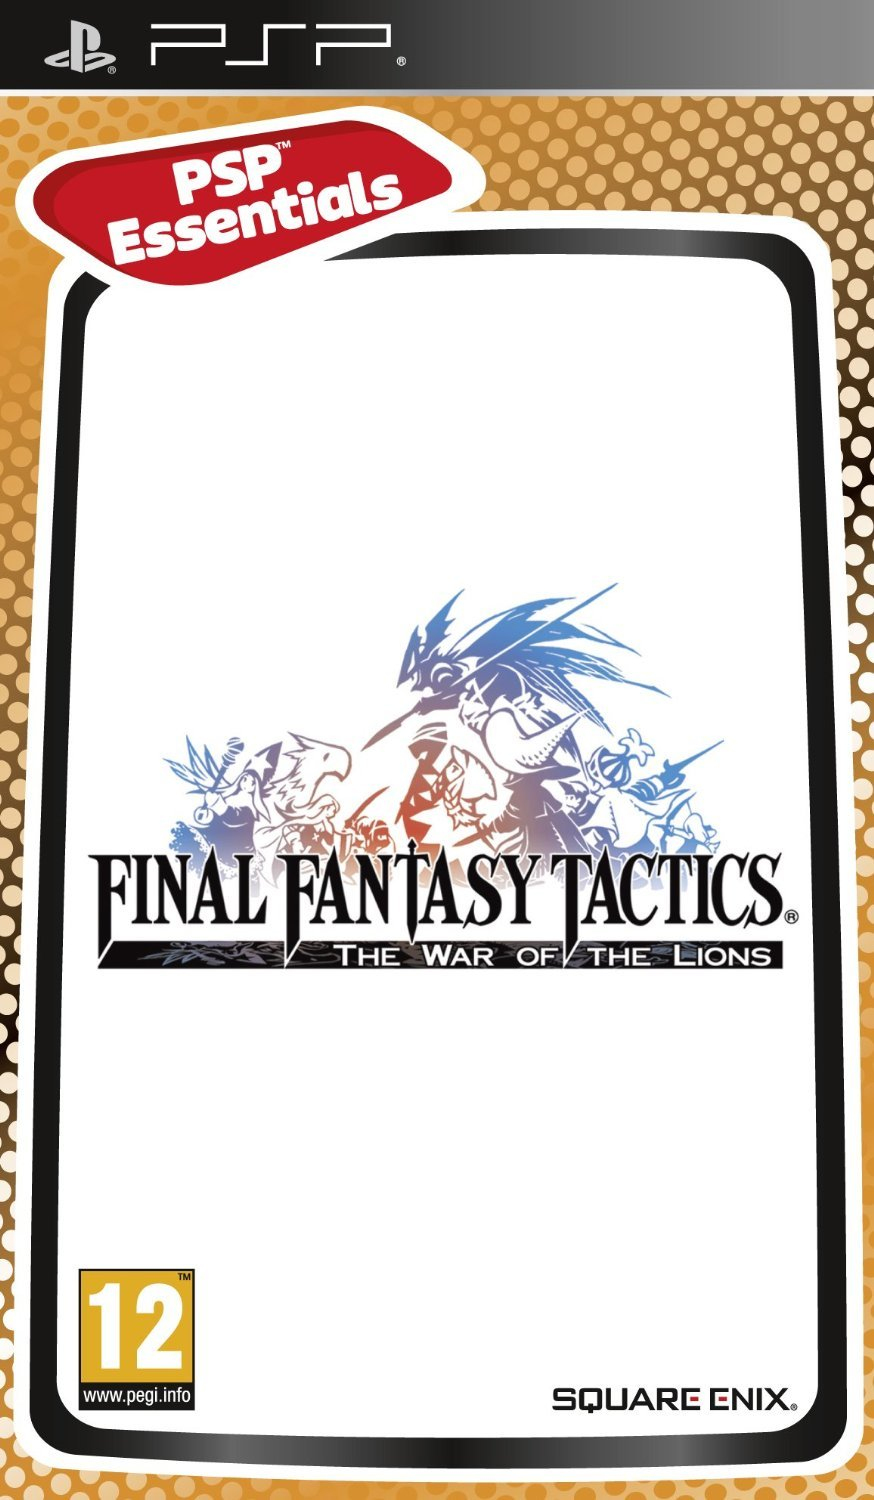 Final Fantasy Tactics: The War Of The Lions (Essentials) for PSP image